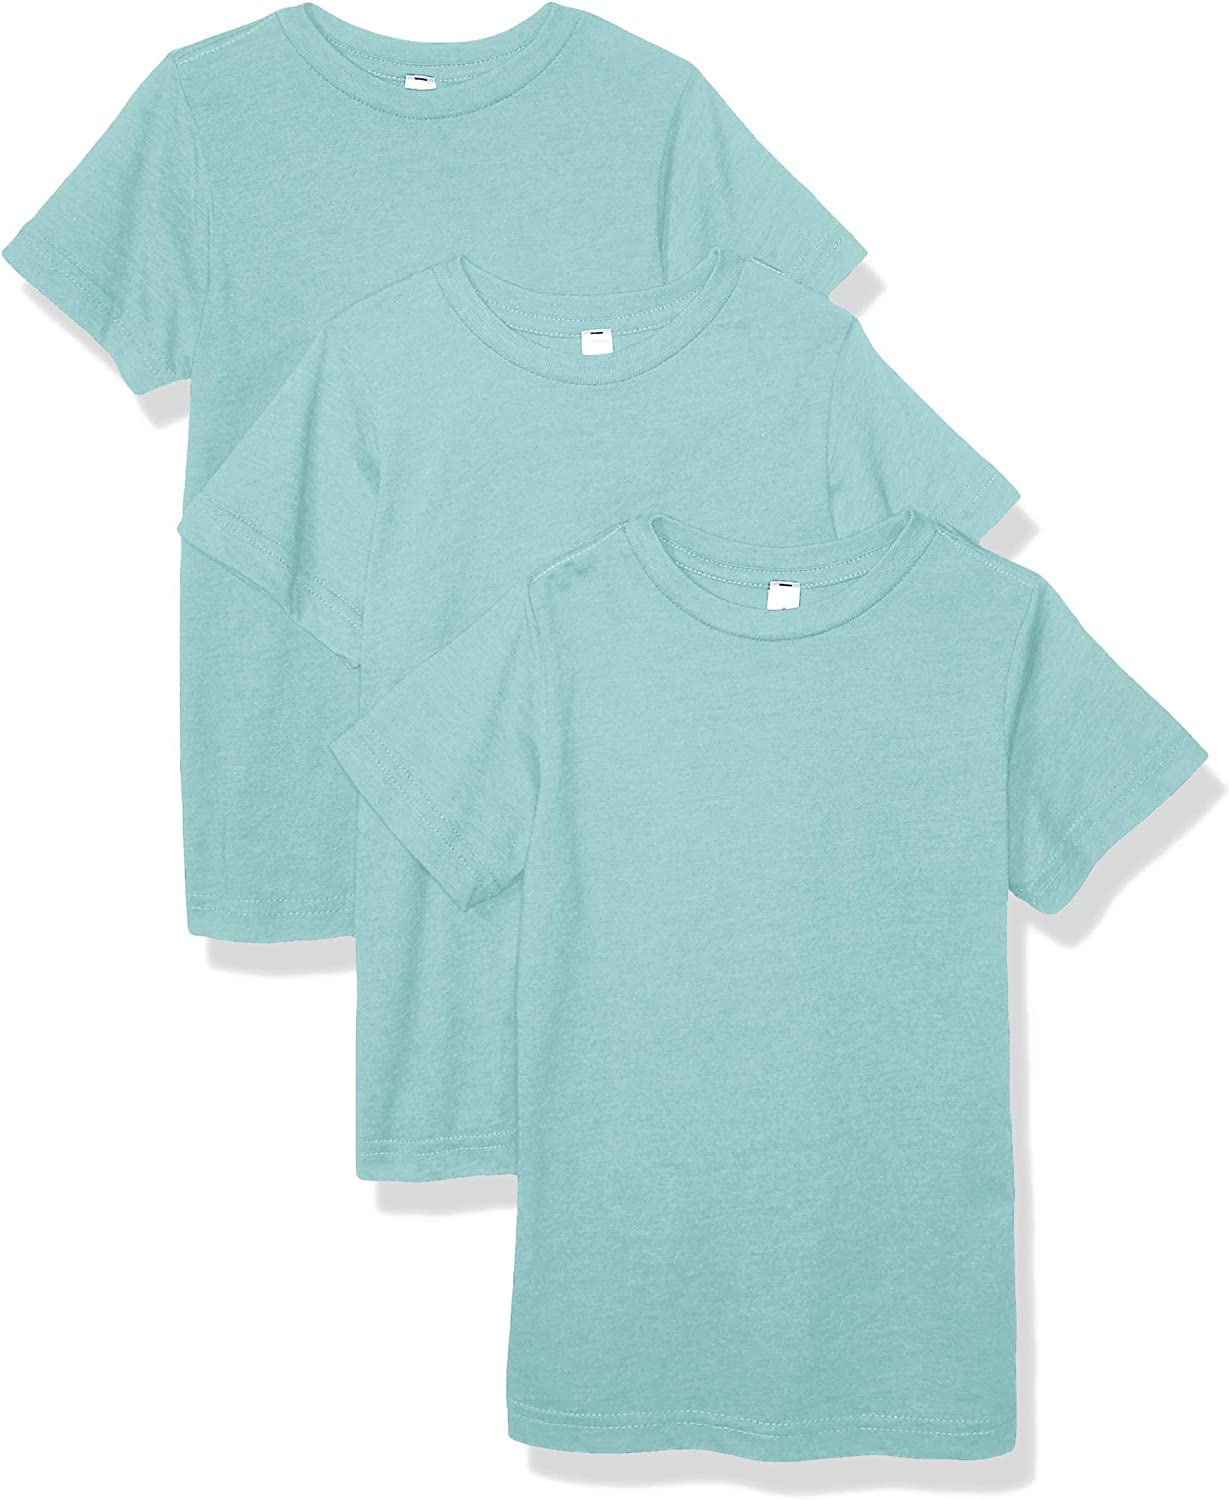 AquaGuard Boys Big Fine Jersey T-Shirt-3 Pack